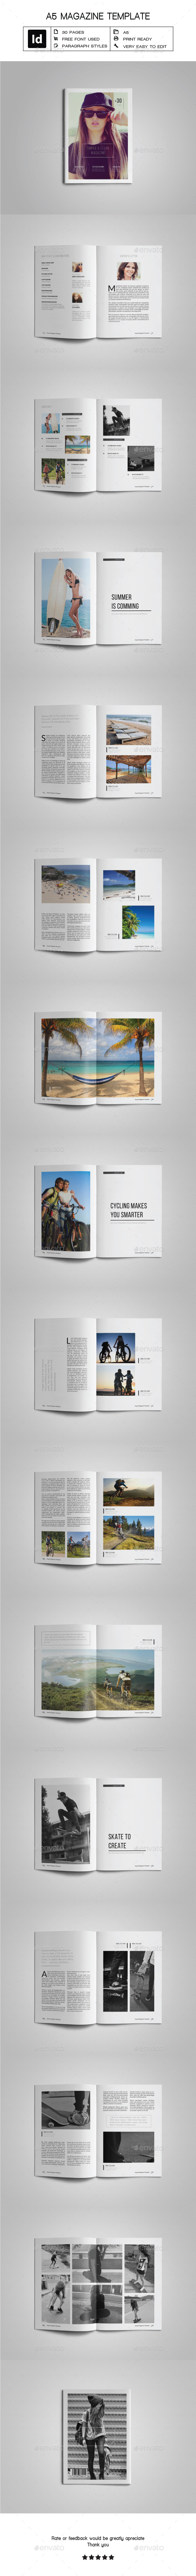 A5 Simple & Clean Magazine Template - Magazines Print Templates